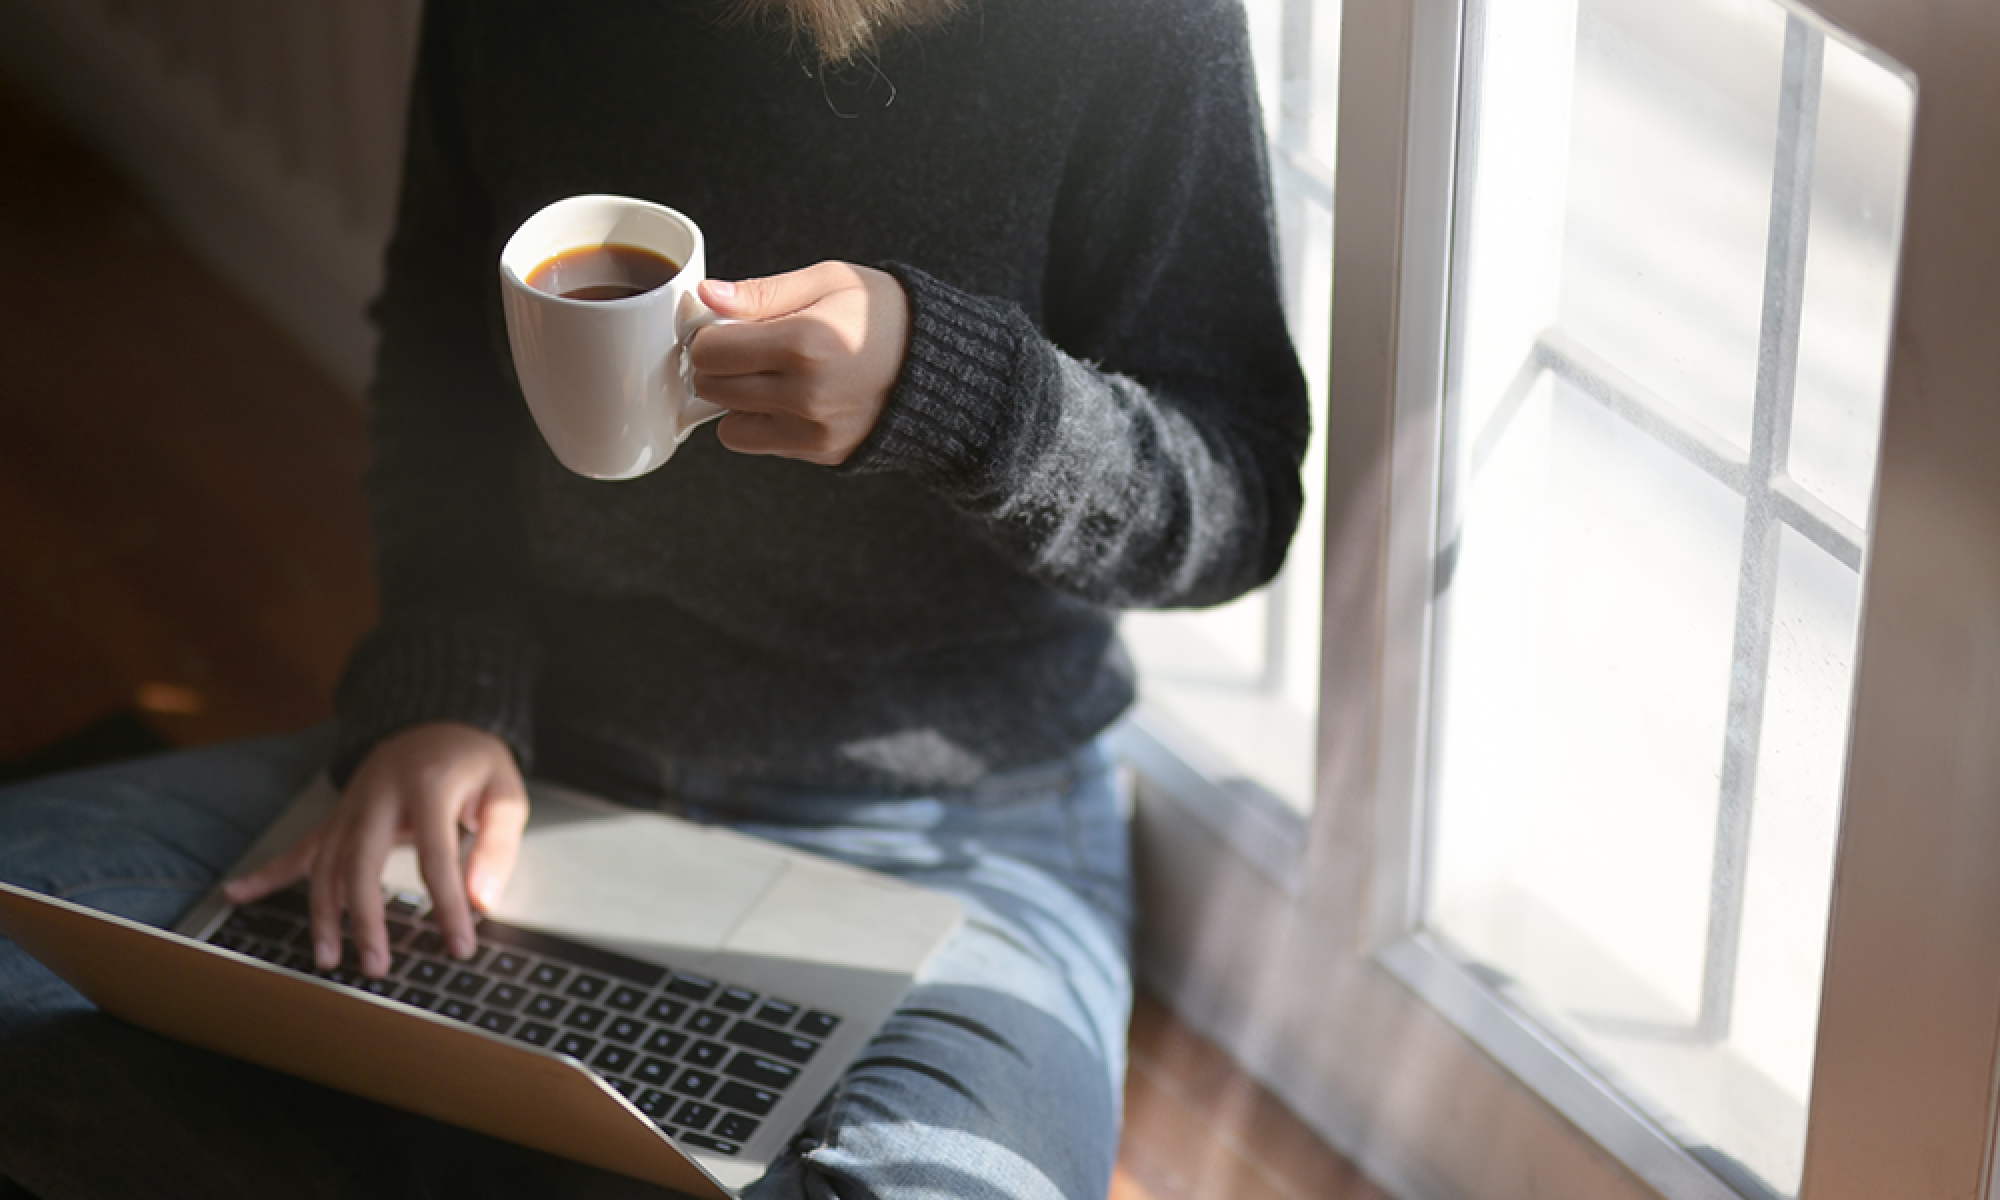 woman-using-laptop-while-holding-a-cup-of-coffee-3759083